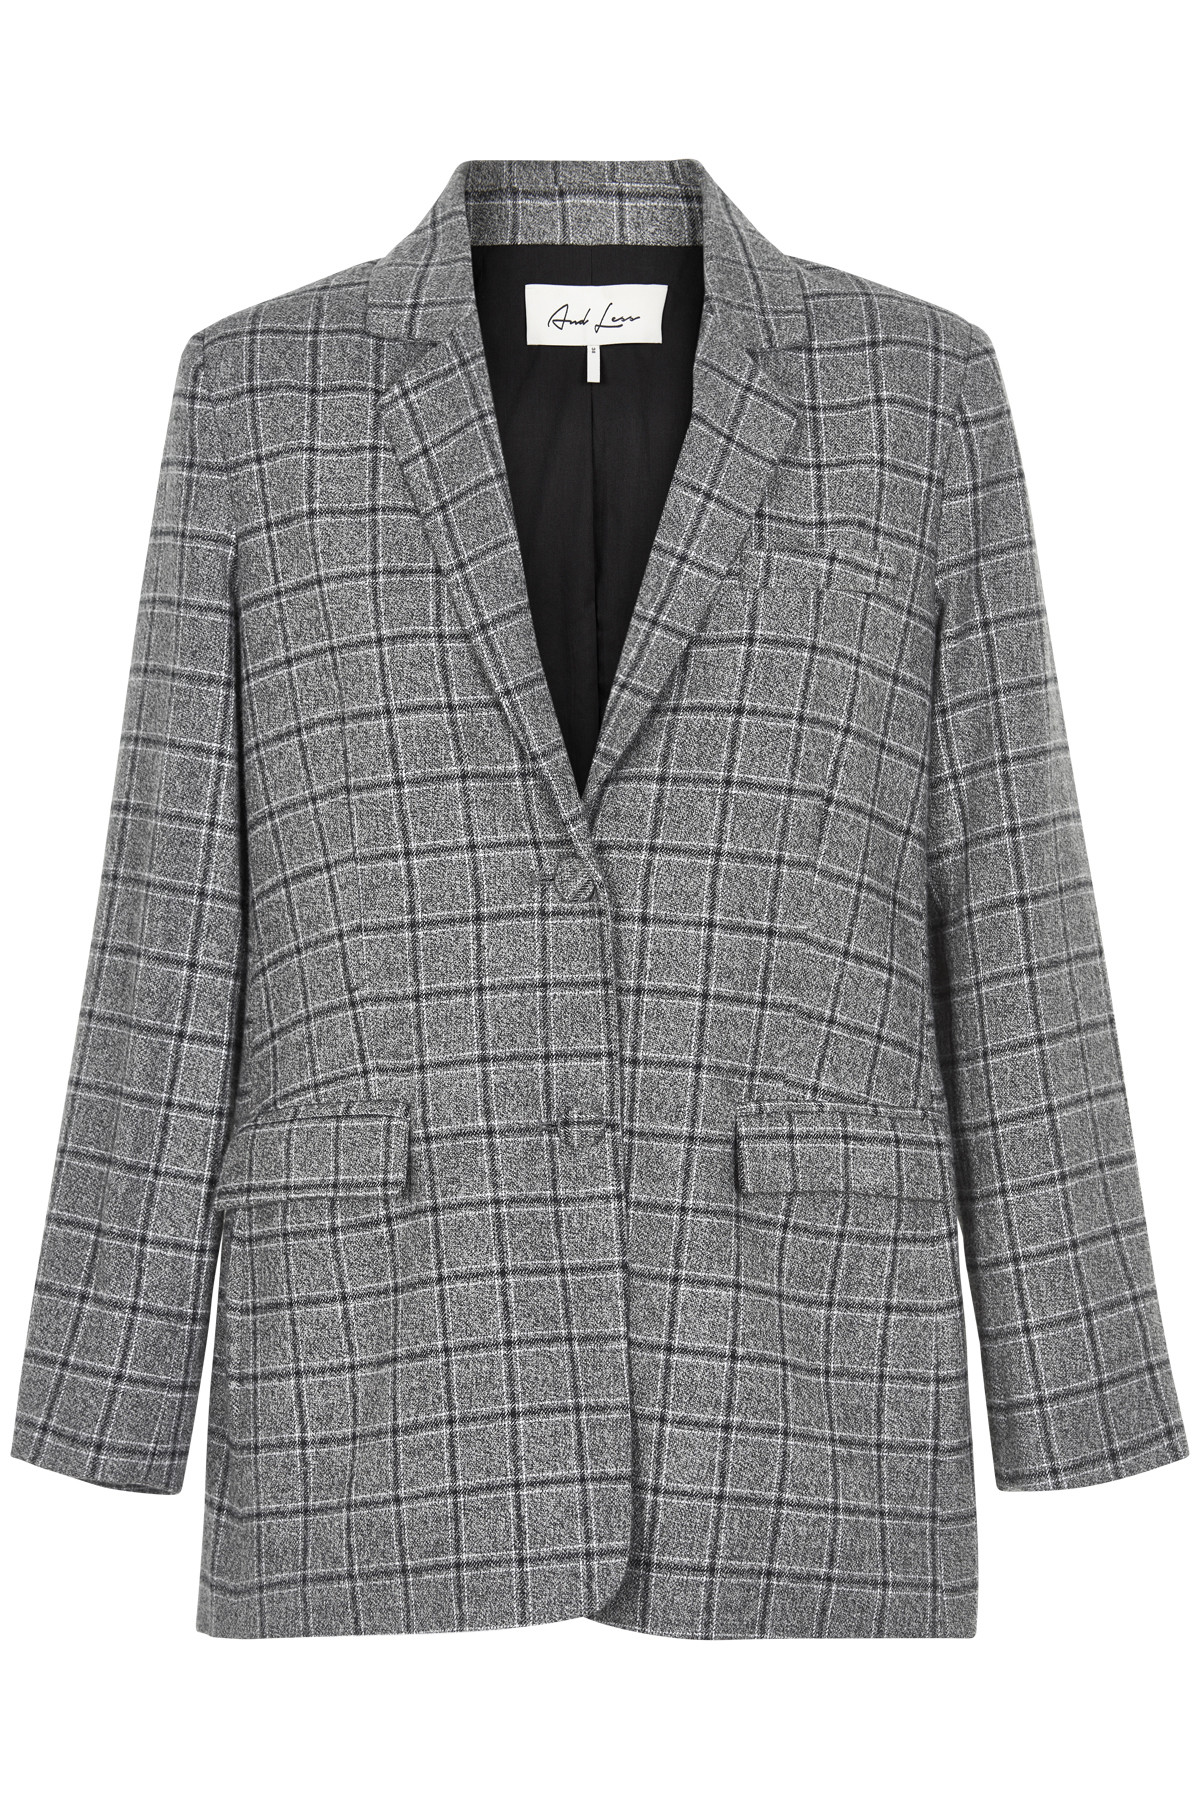 Image of   AND LESS CHARLOTI BLAZER 5119902 (Caviar Check, 36)